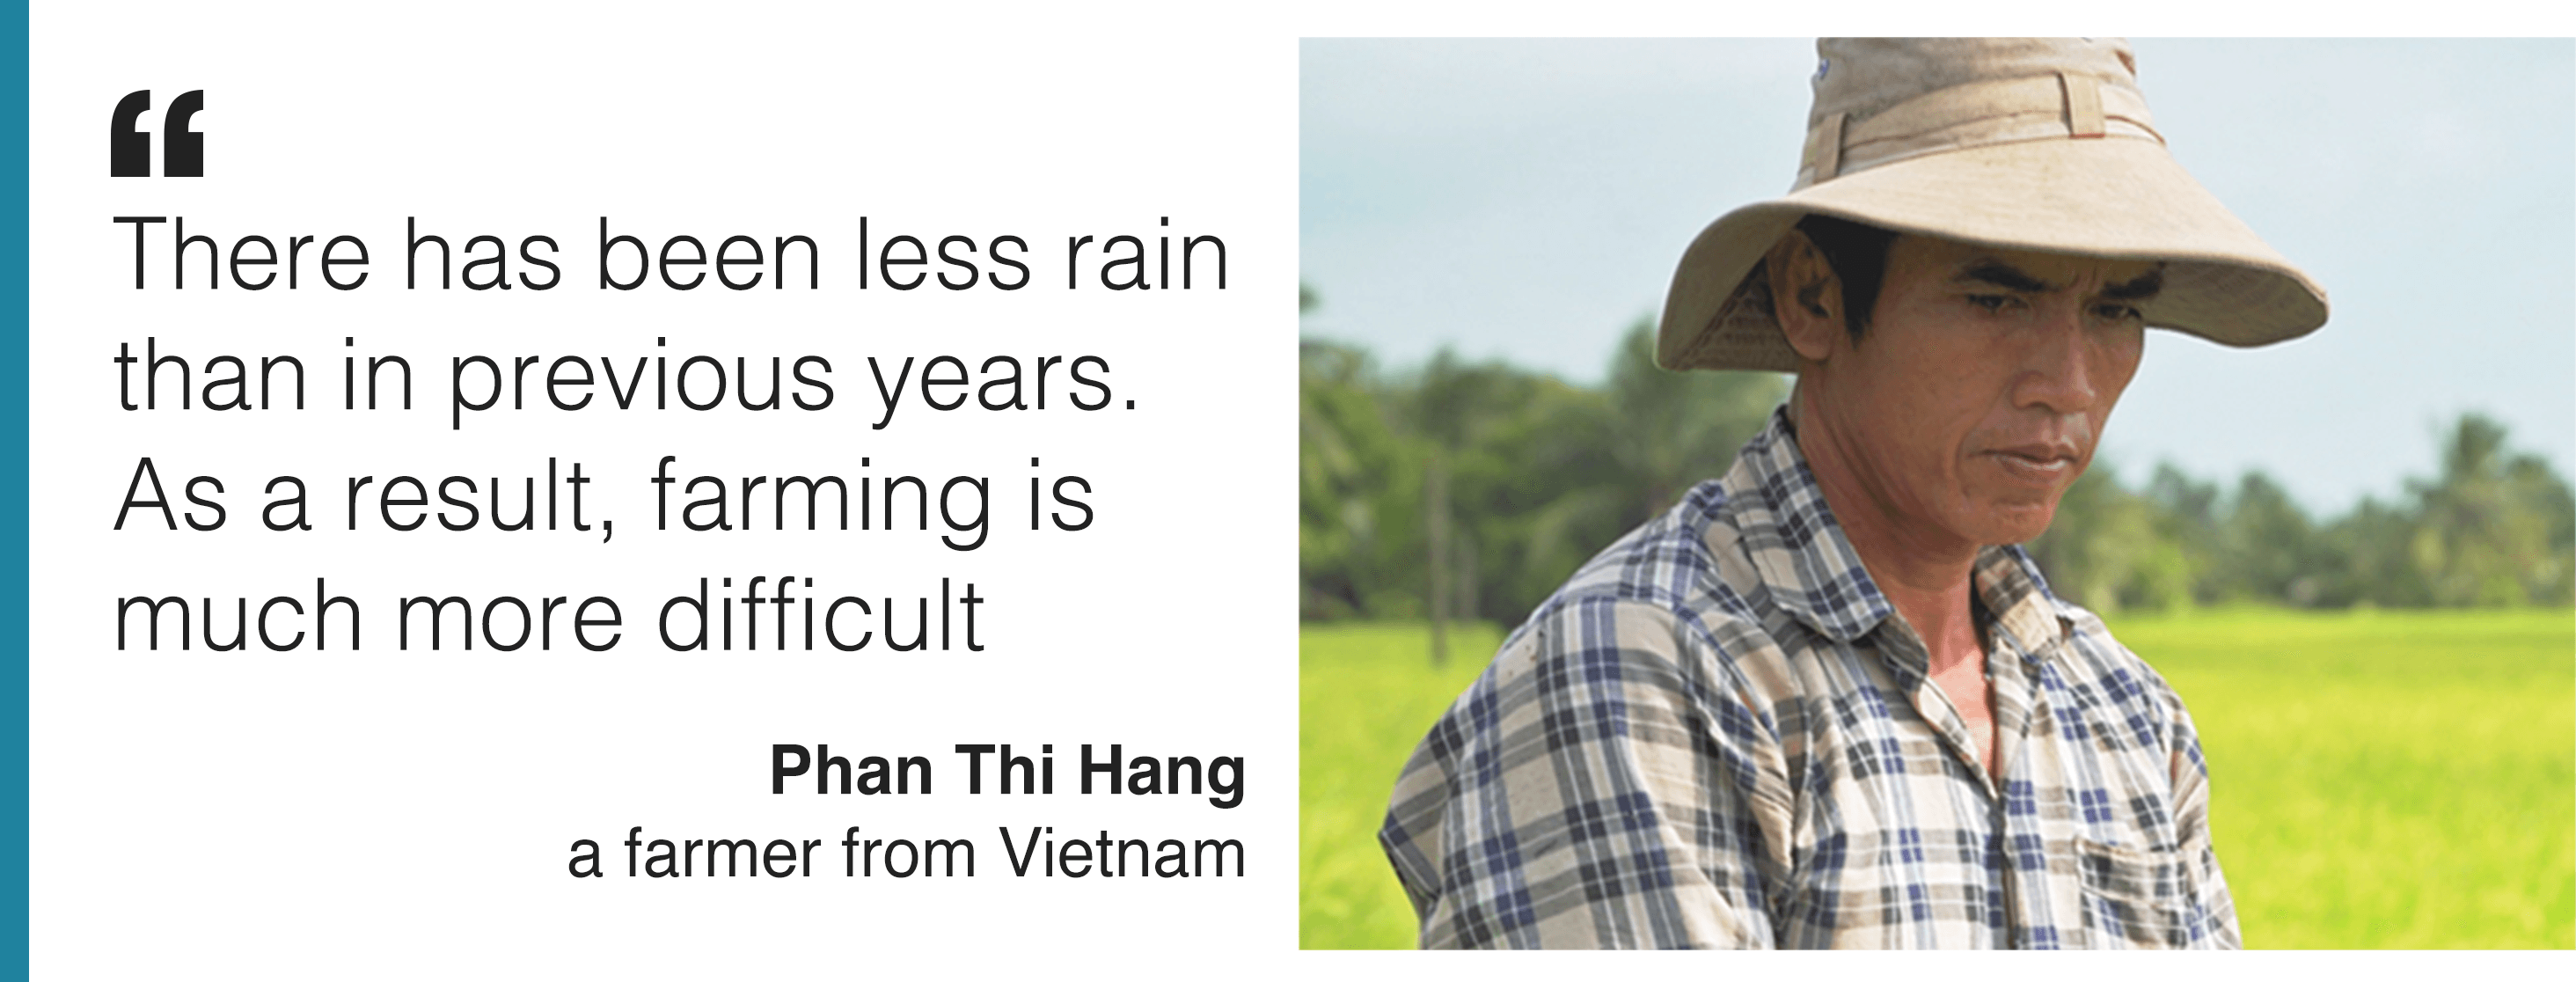 Image and quote from Phan Thi Hang, a farmer from Vietnam. He says 'There has been less rain than in previous years. As a result, farming is much more difficult.'